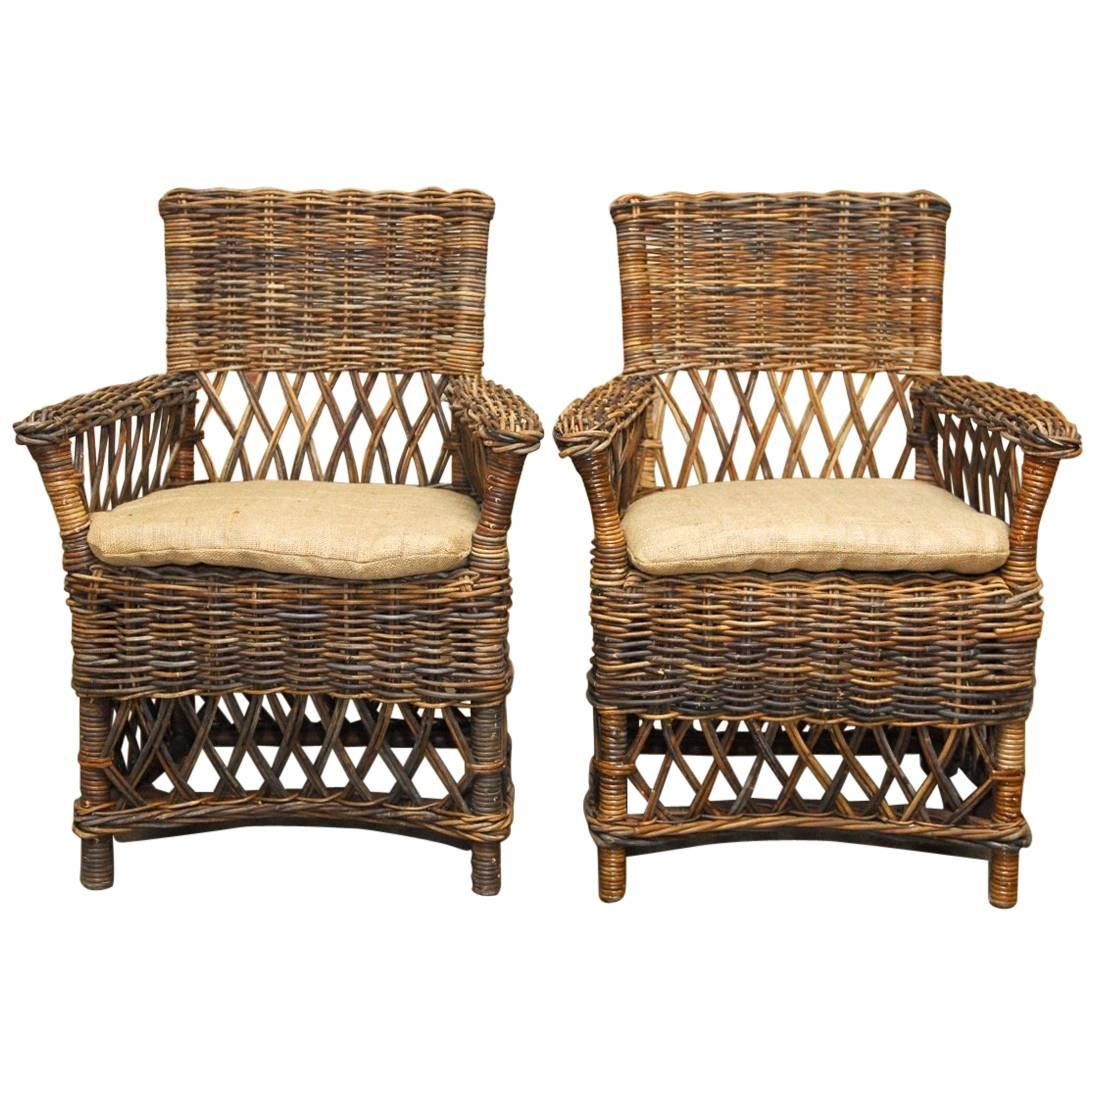 Pair Of Organic Style Woven Stick Wicker Armchairs 1